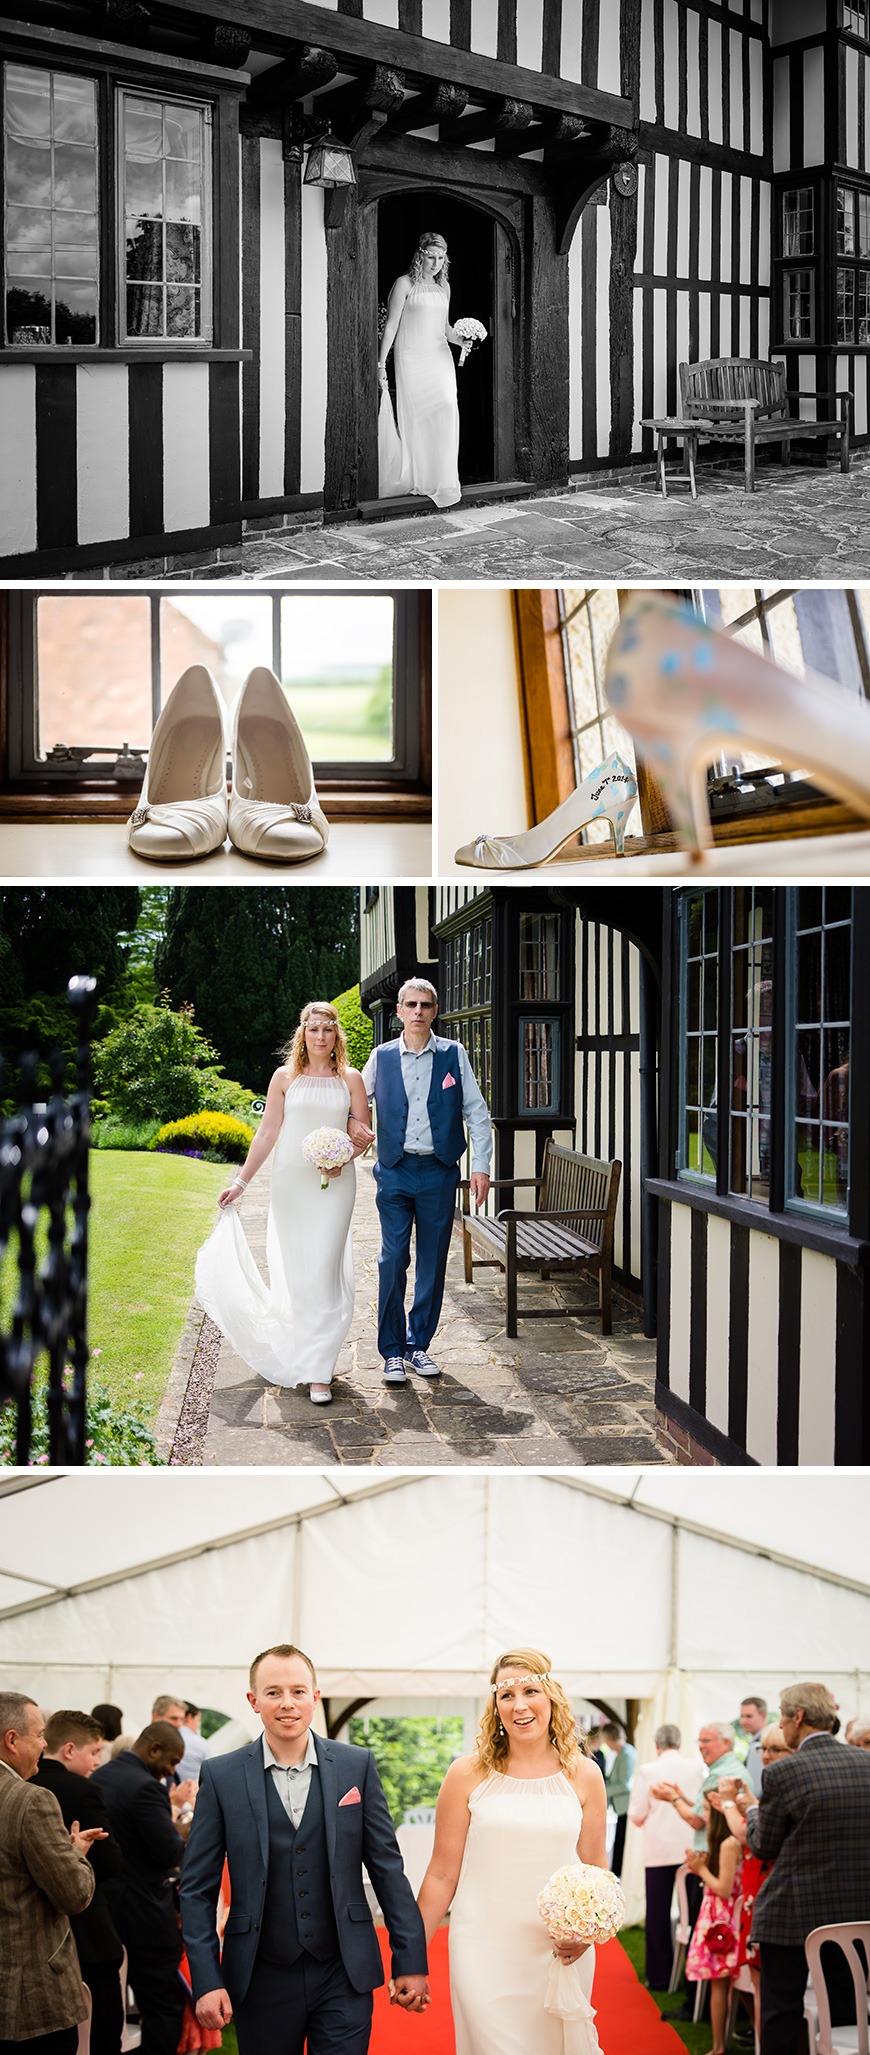 Hayley and Scott's Garden Party Wedding at Brewerstreet Farmhouse | CHWV